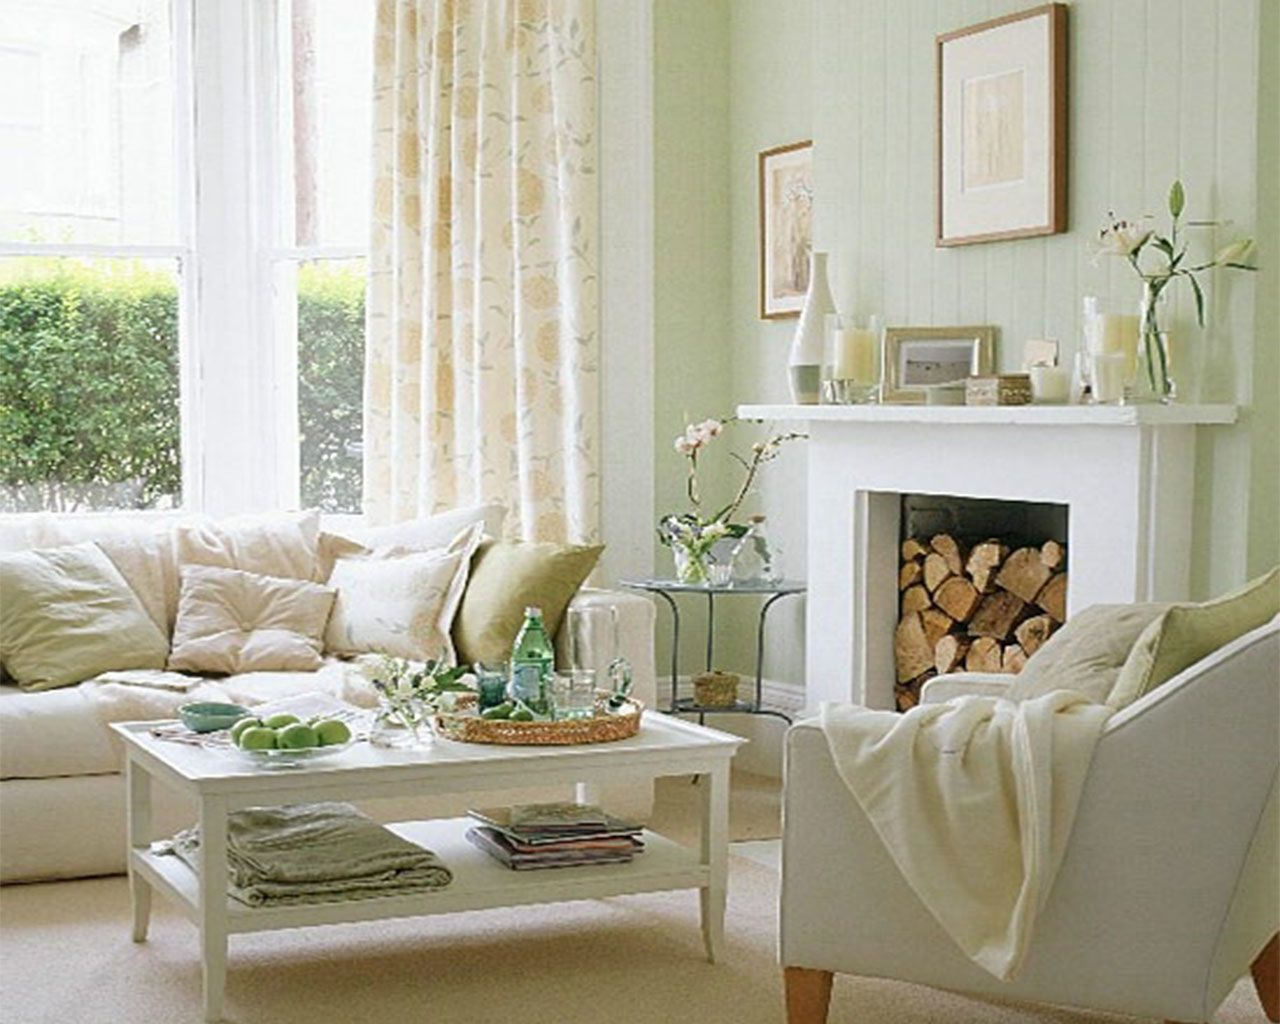 Light Green Colors For Living Room Modular Creamy White With Accents Of Very And Blue